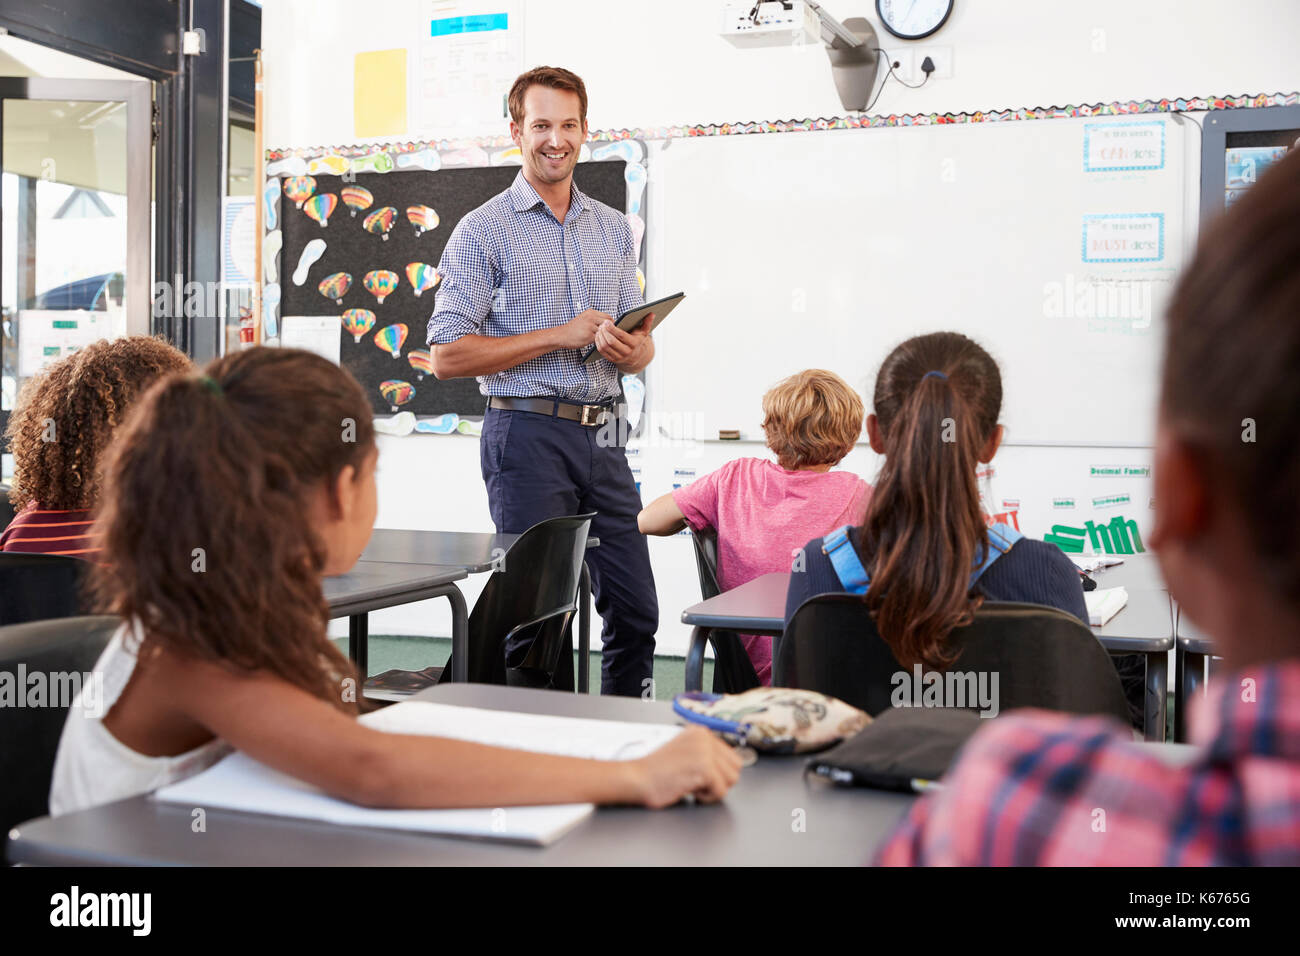 Teacher with tablet in front of elementary school class - Stock Image